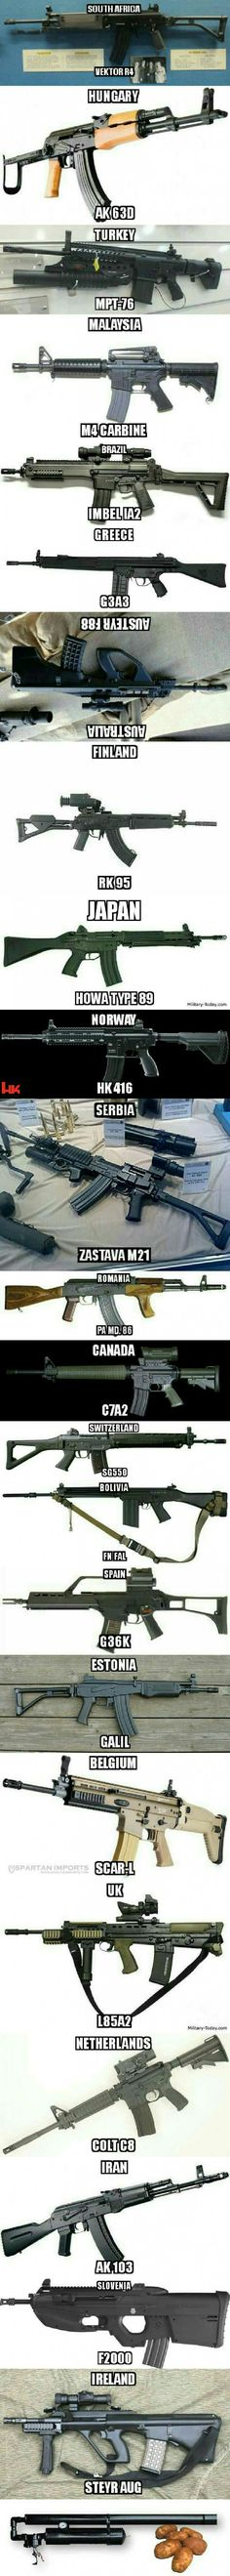 Service rifles around the world part 2